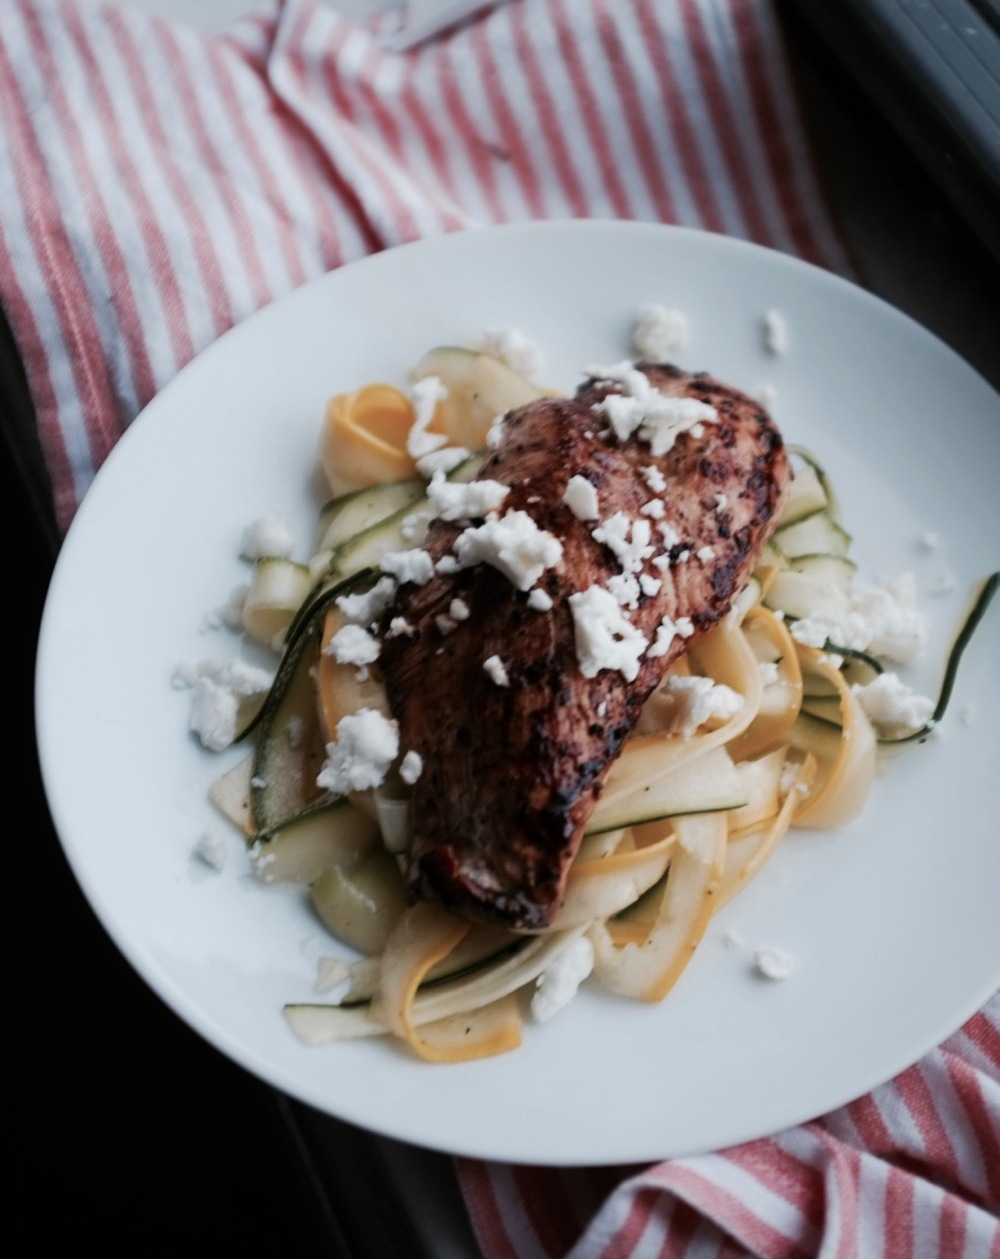 The most delicious, simple late summer dinner. Shave squash with a vegetable peeler, toss with oil and salt and then top with a quickly marinated chicken breast. Top with crumbled feta--voila!